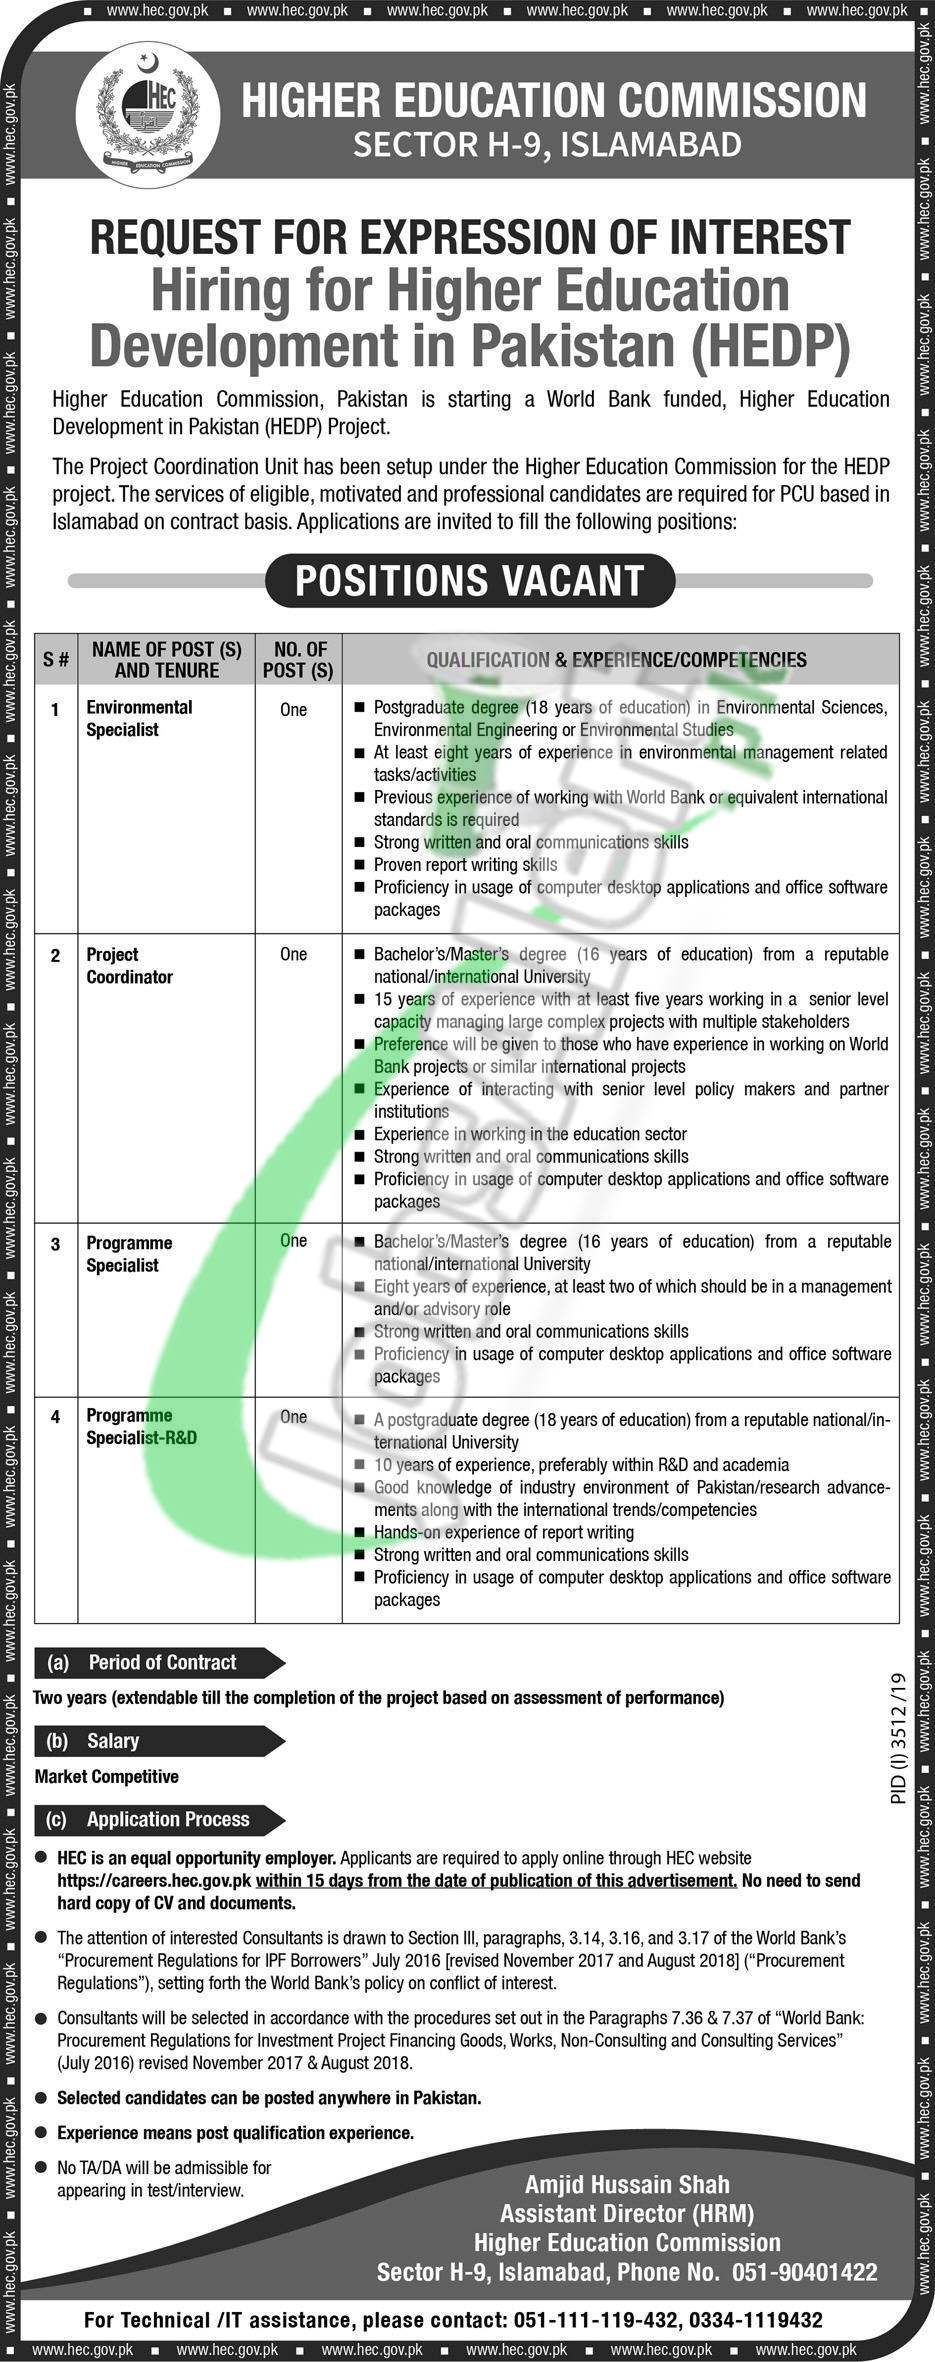 Hiring For Higher Education Commission Islamabad